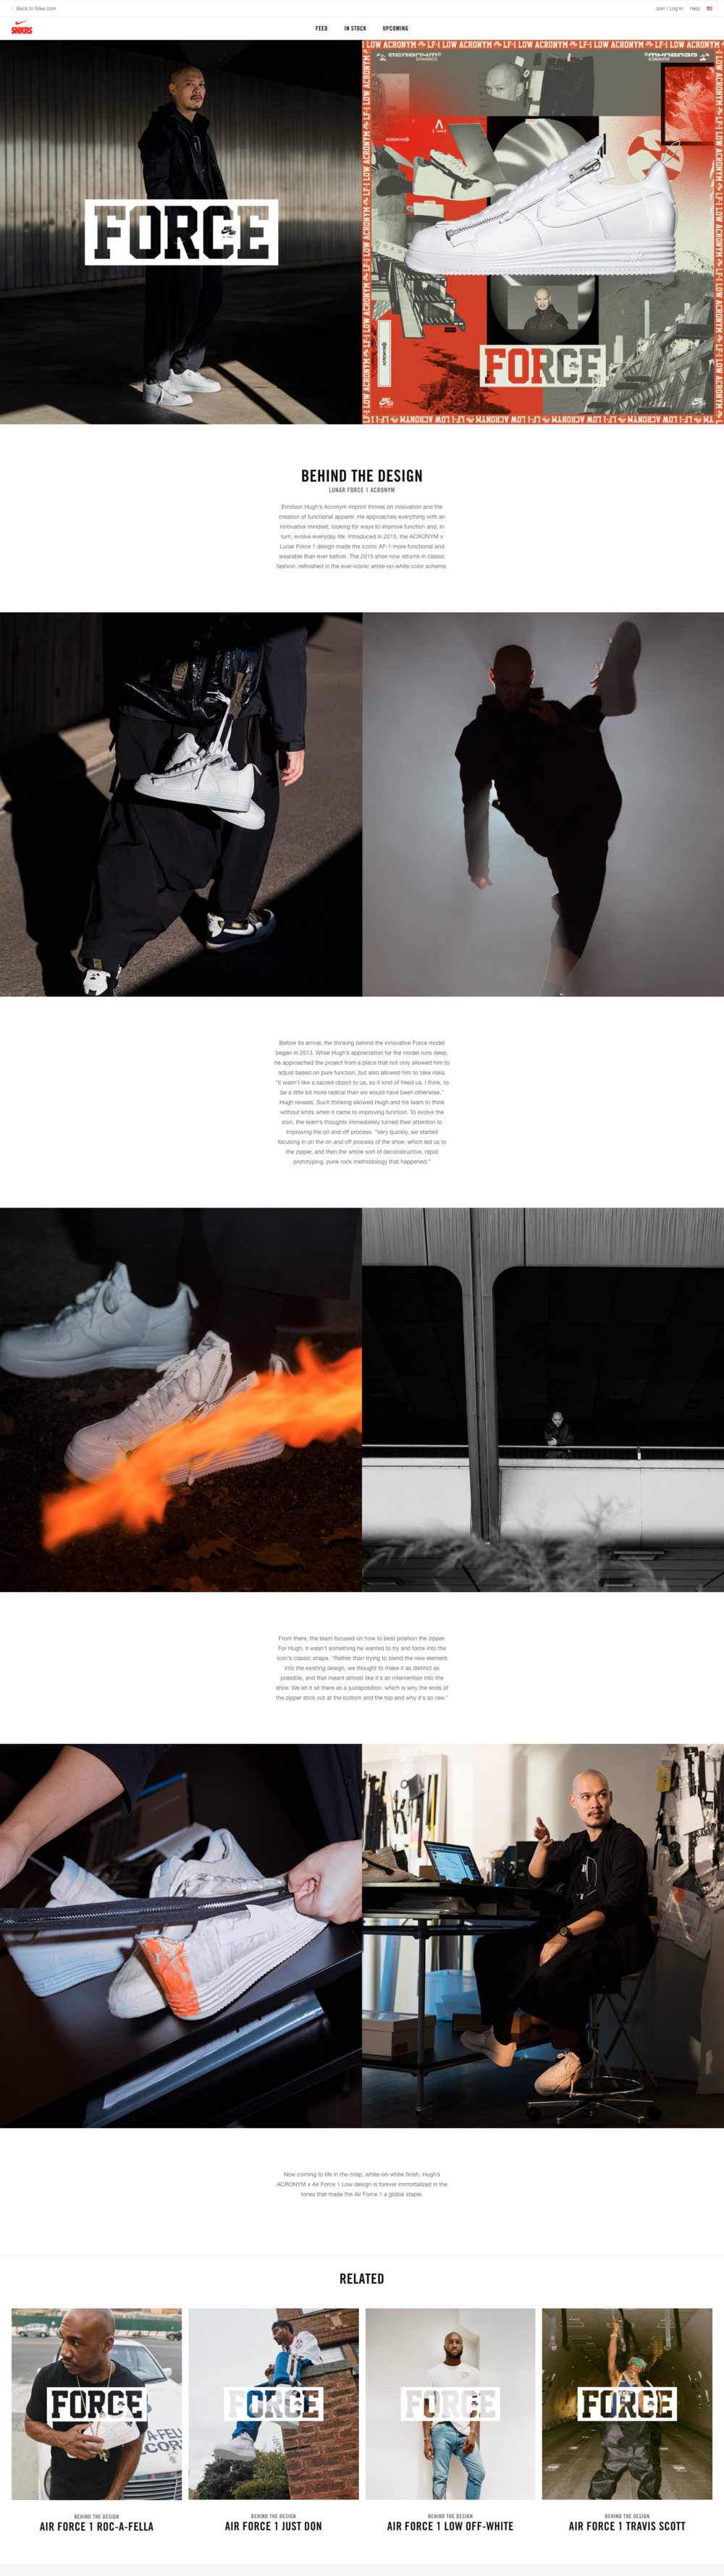 screencapture-nike-launch-t-behind-the-design-lunar-force-1-acronym-1510177120008.png